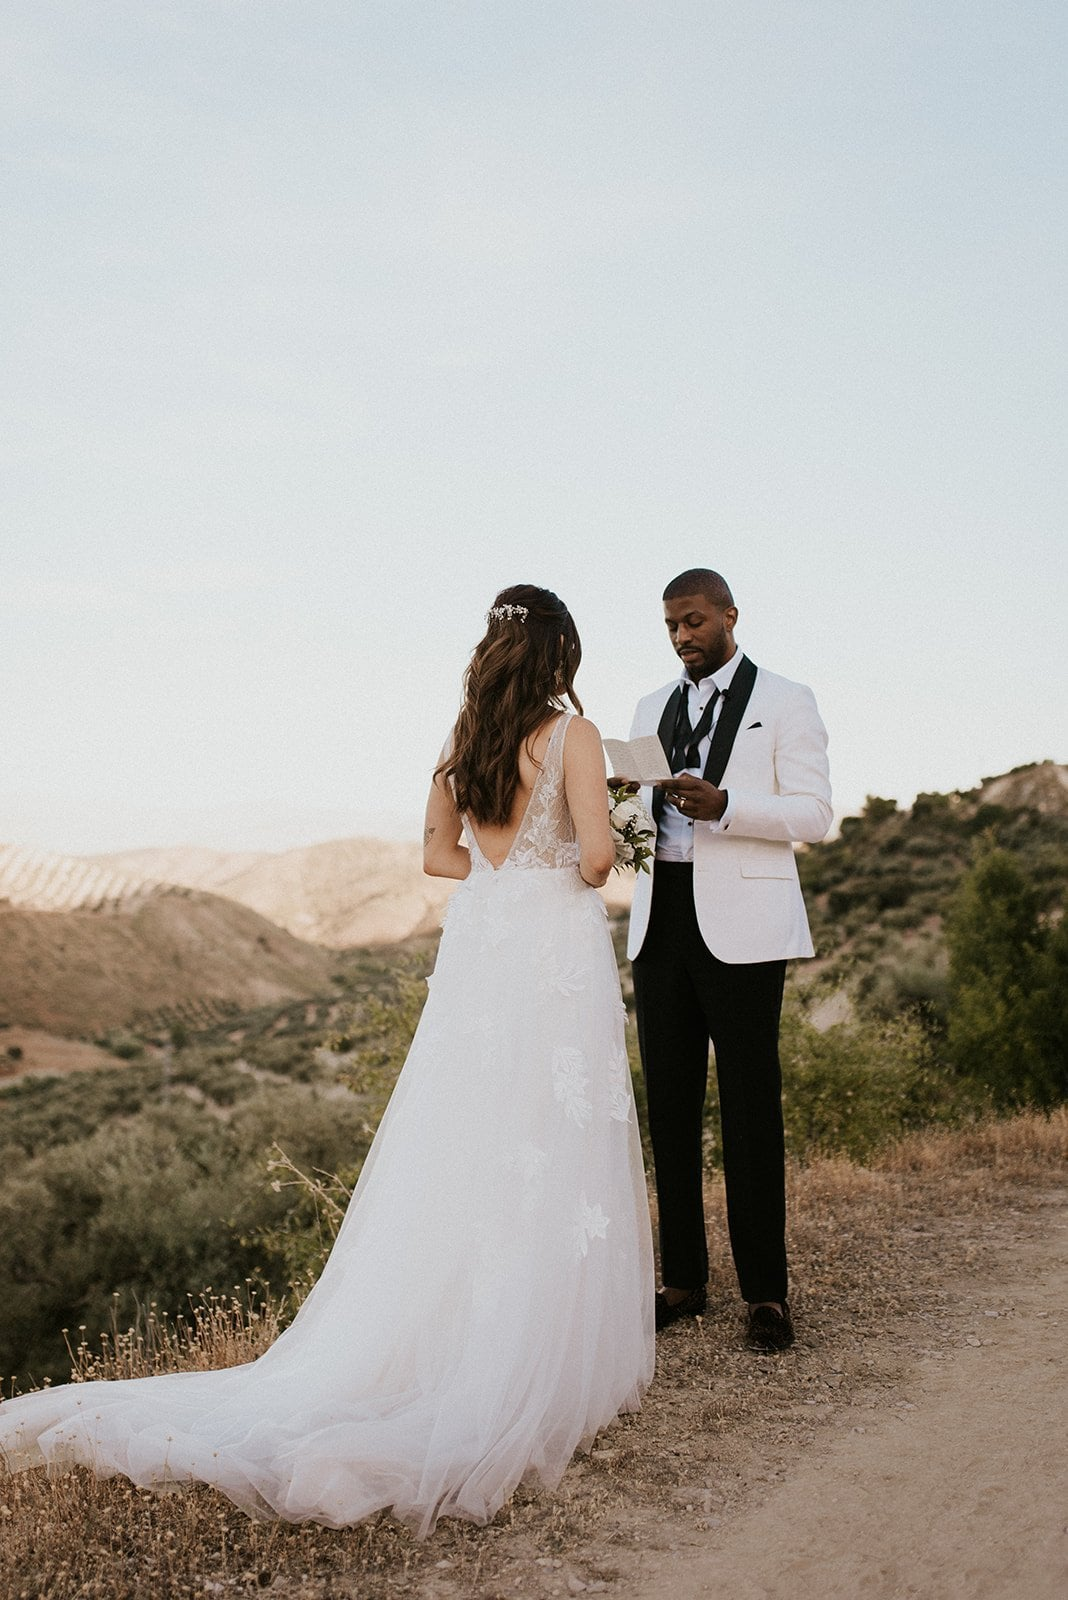 A couple saying their vows